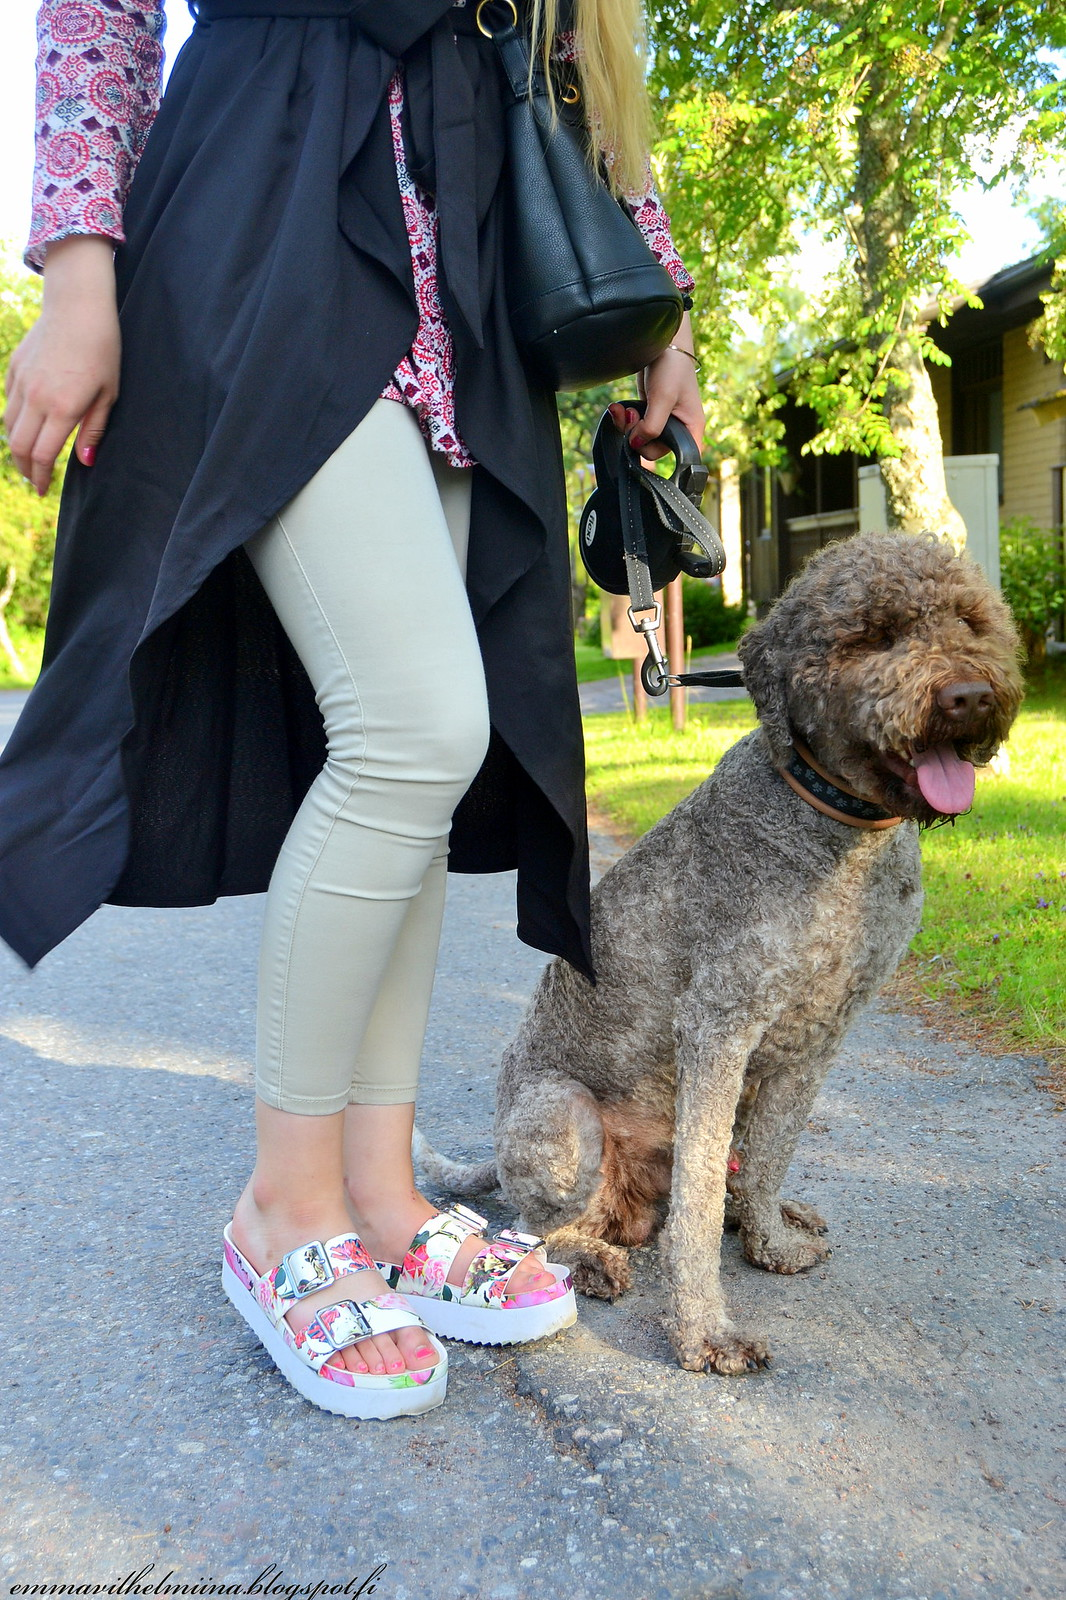 lagotto romagnolo and outfit